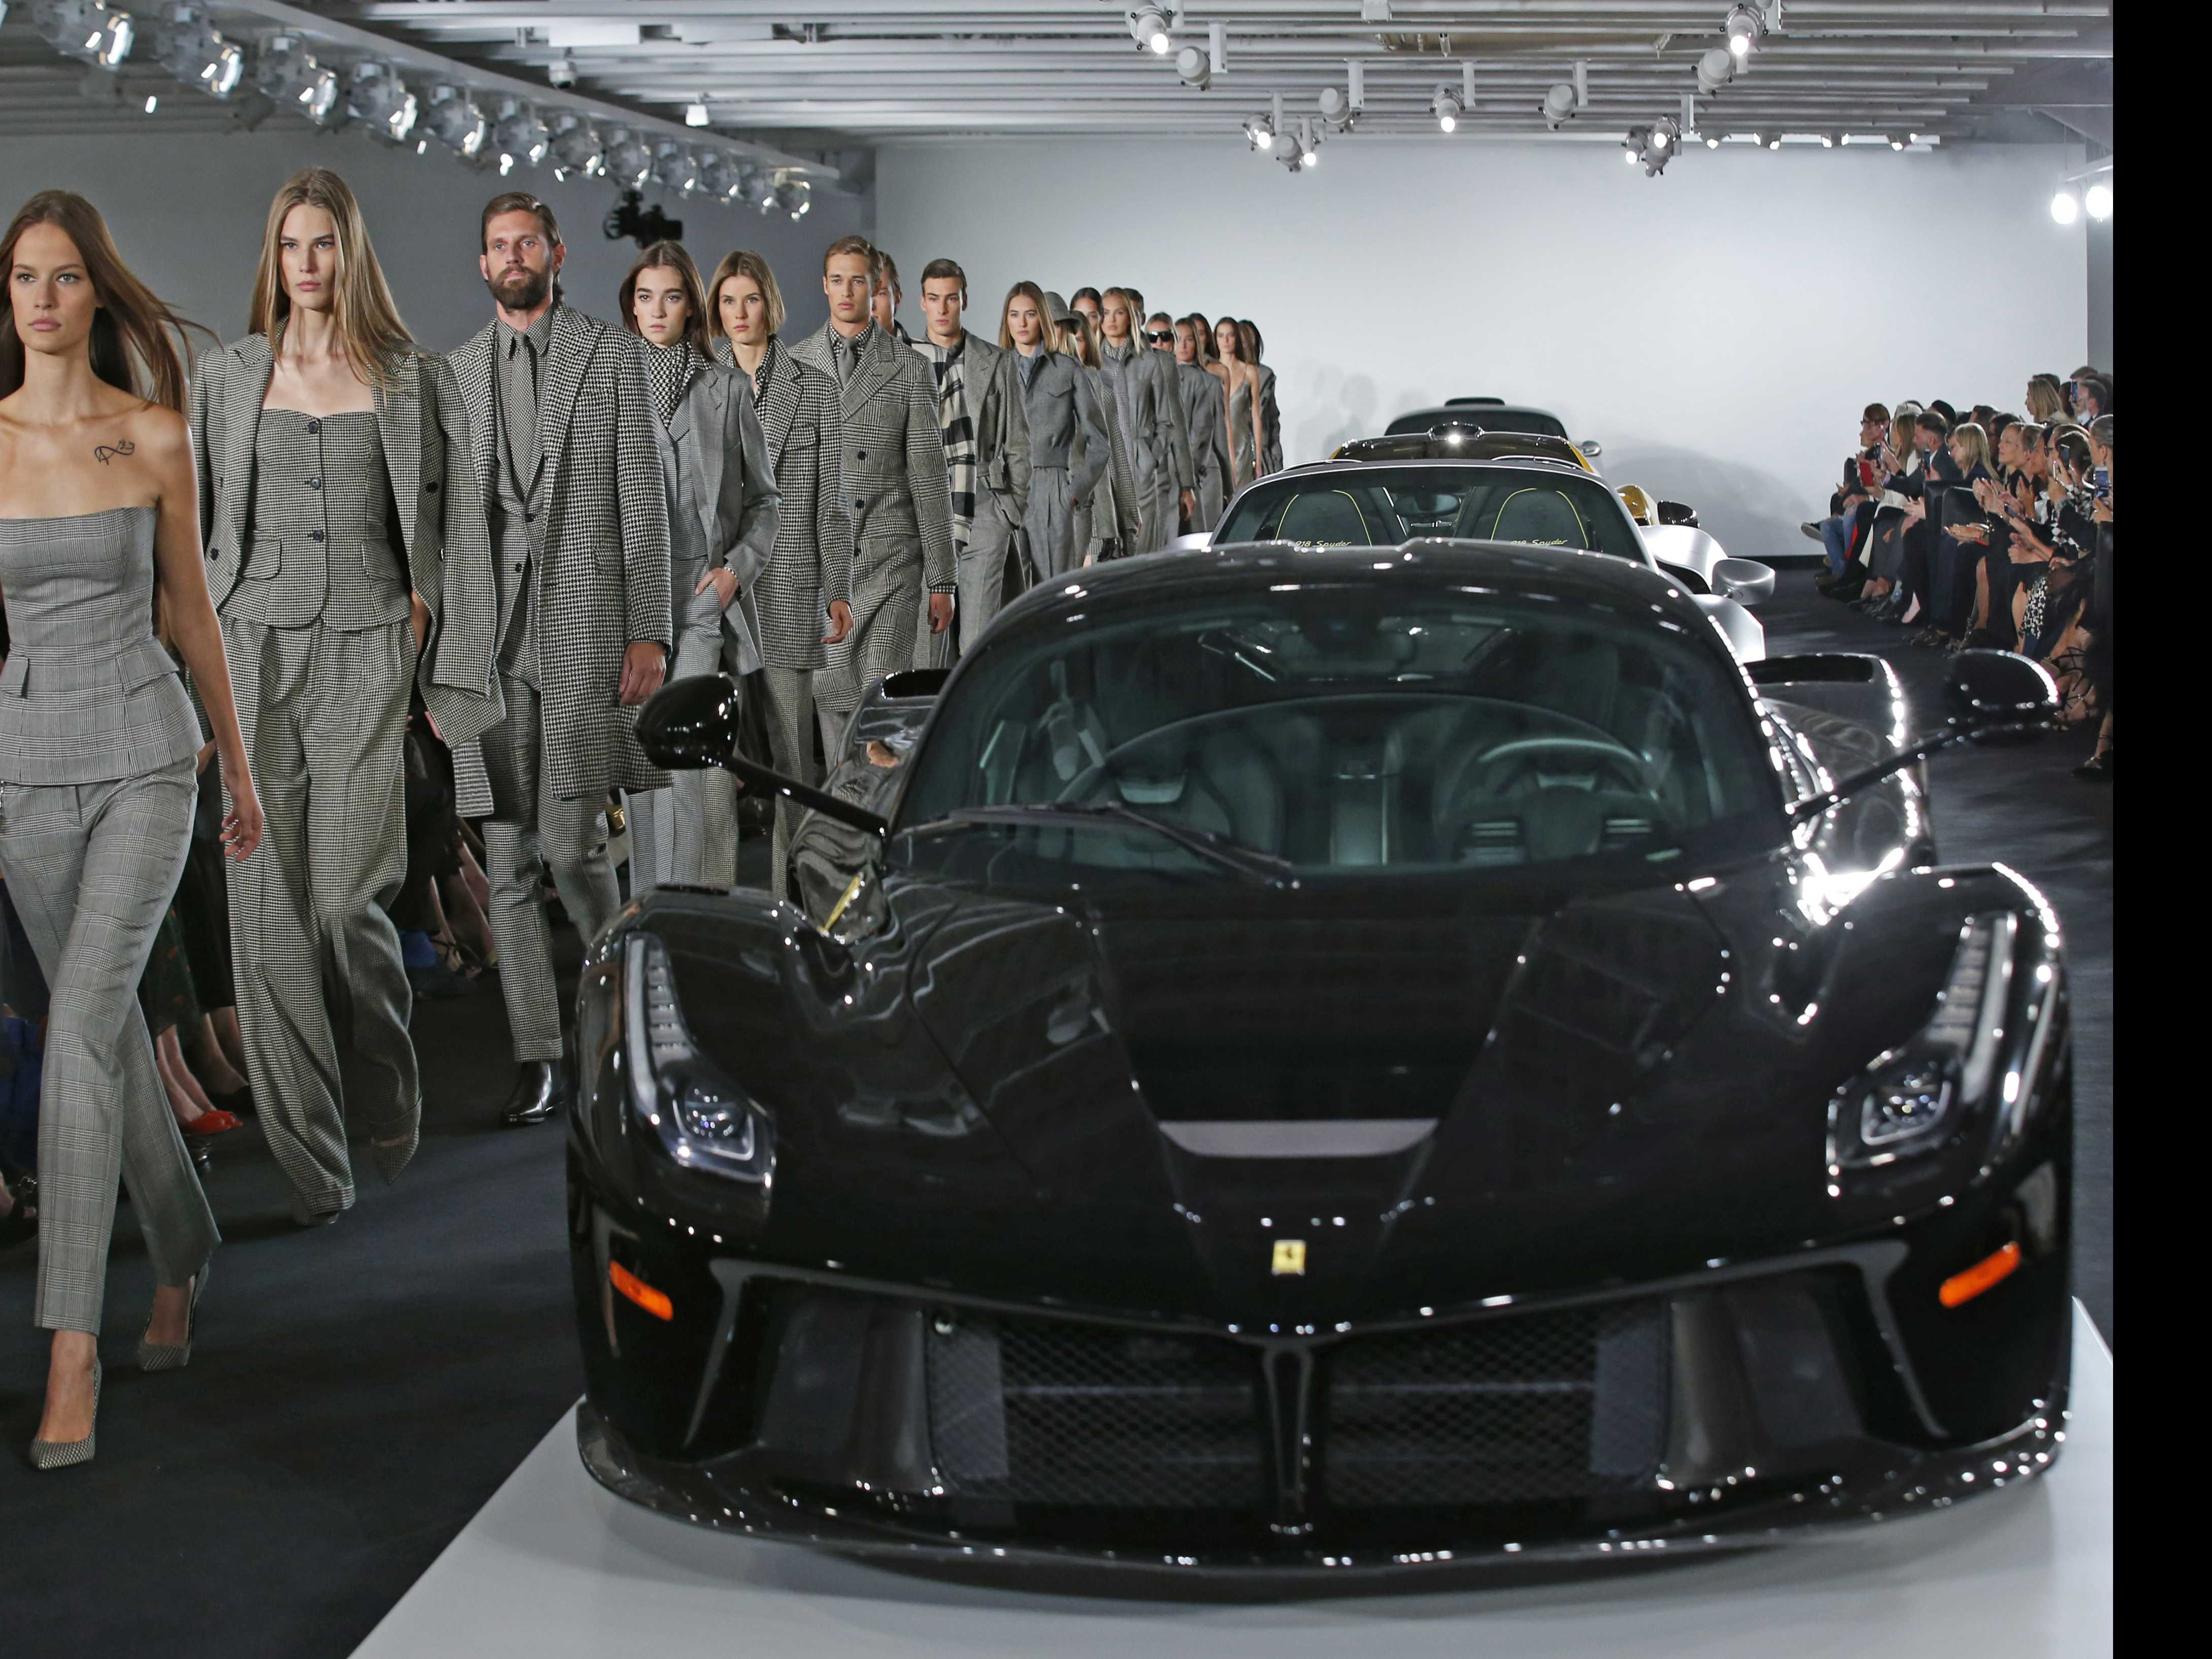 Ralph Lauren Channels 007 in Opulent Show with Vintage Cars